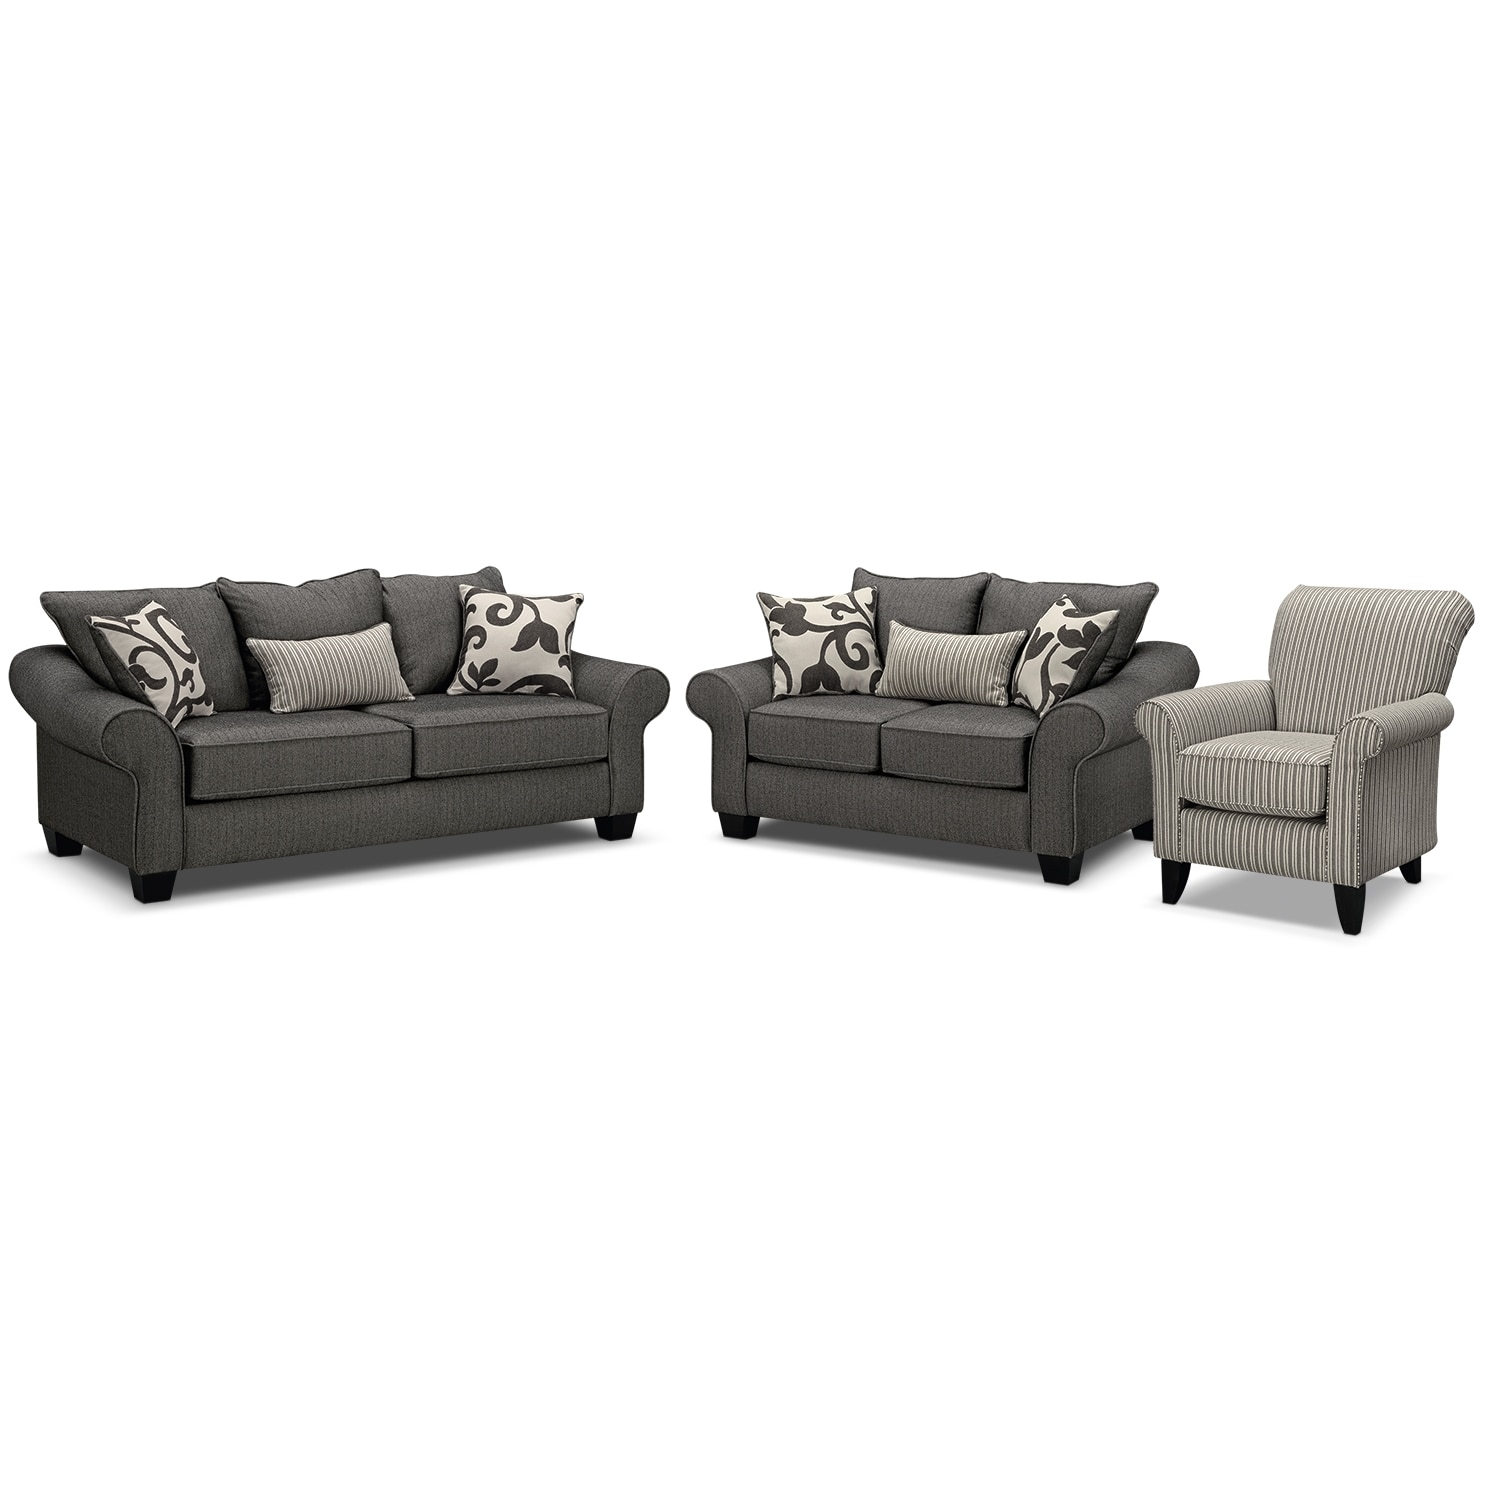 Living Room Furniture - Colette Full Innerspring Sleeper Sofa, Loveseat and Accent Chair Set - Gray